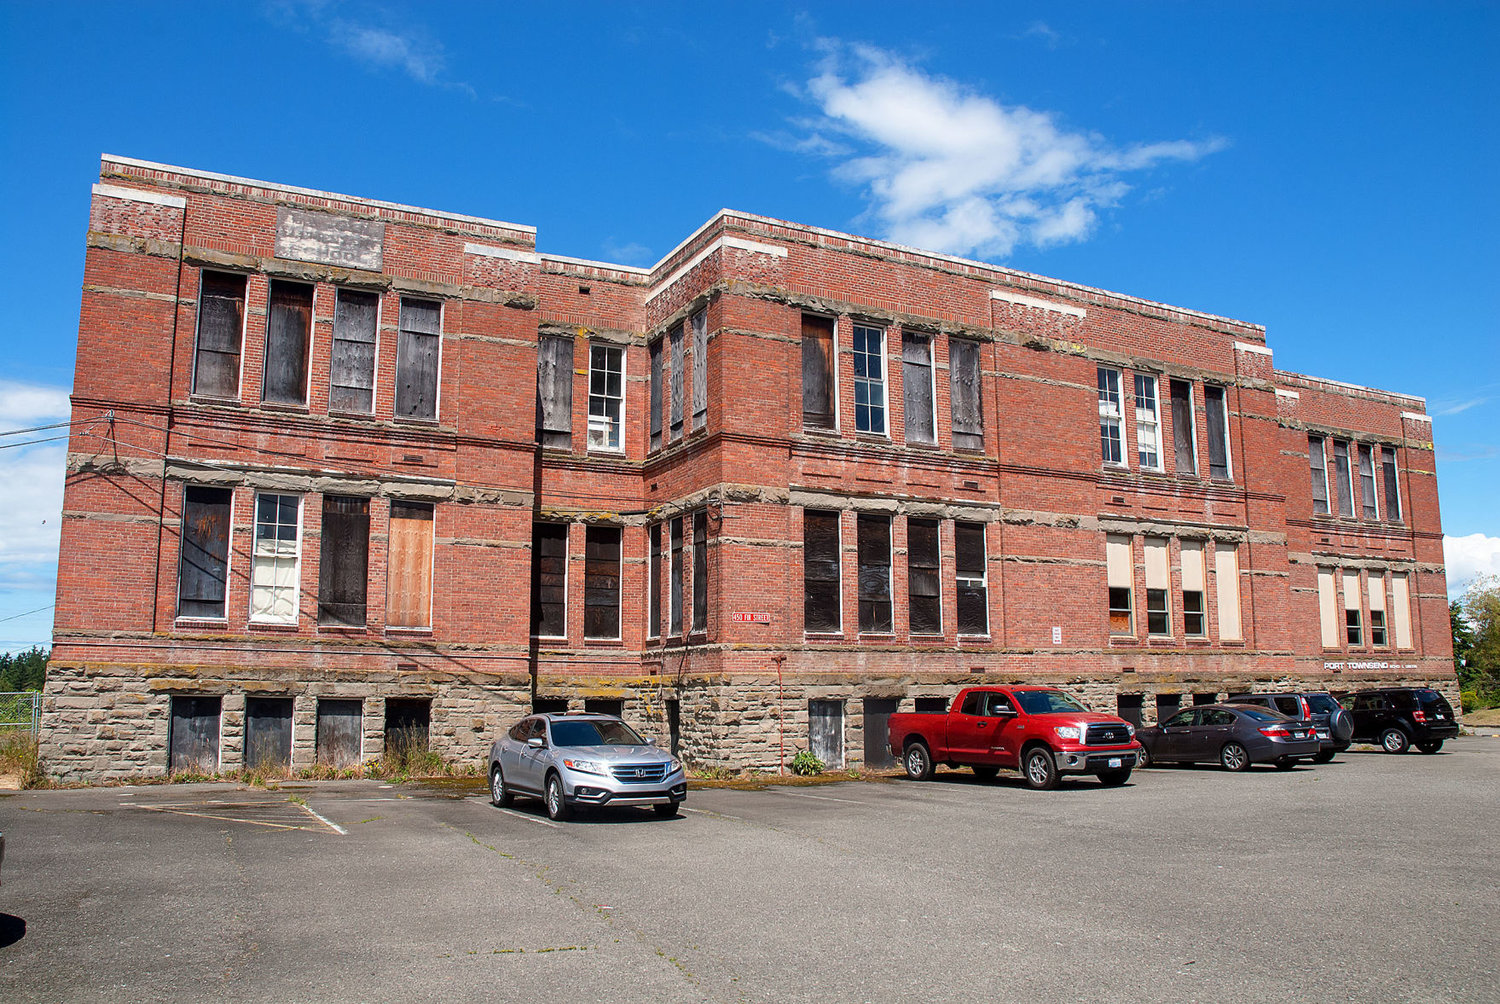 The boarded-up Lincoln School, built in 1892, has been nominated for inclusion on the National Register of Historic Places. Photo by Chris Tucker